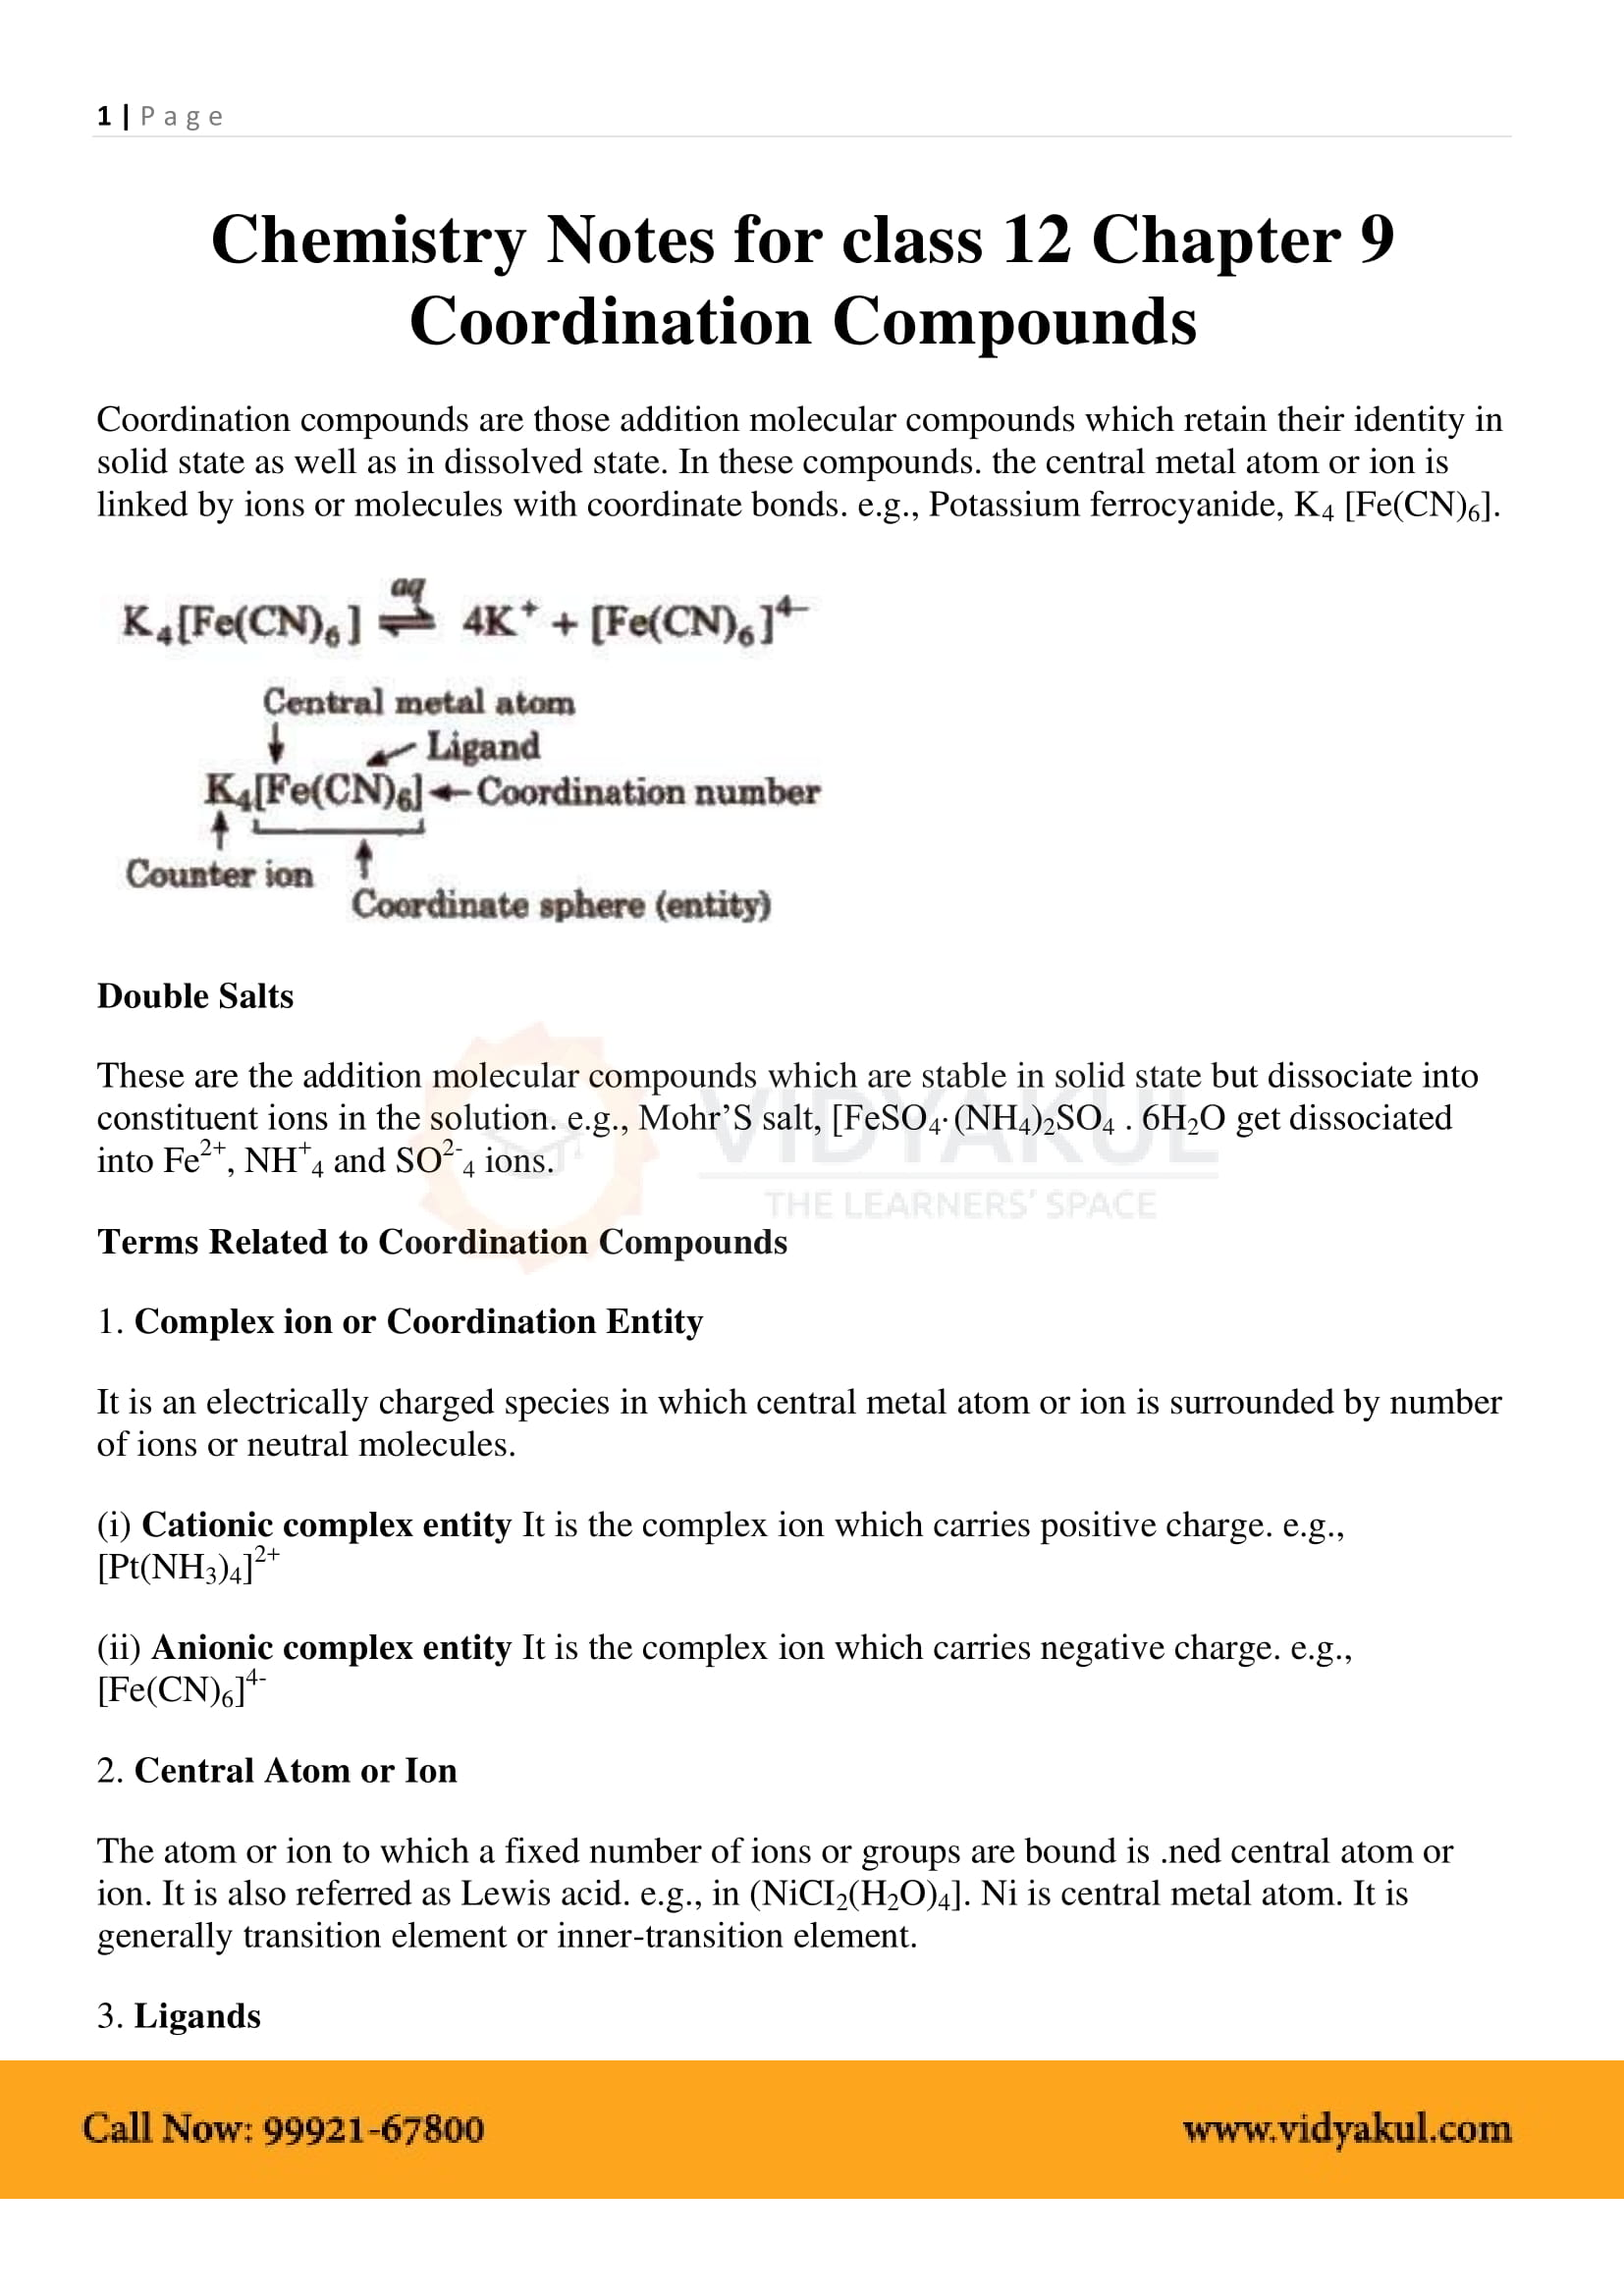 Coordination Compounds Class 12 Notes | Vidyakul